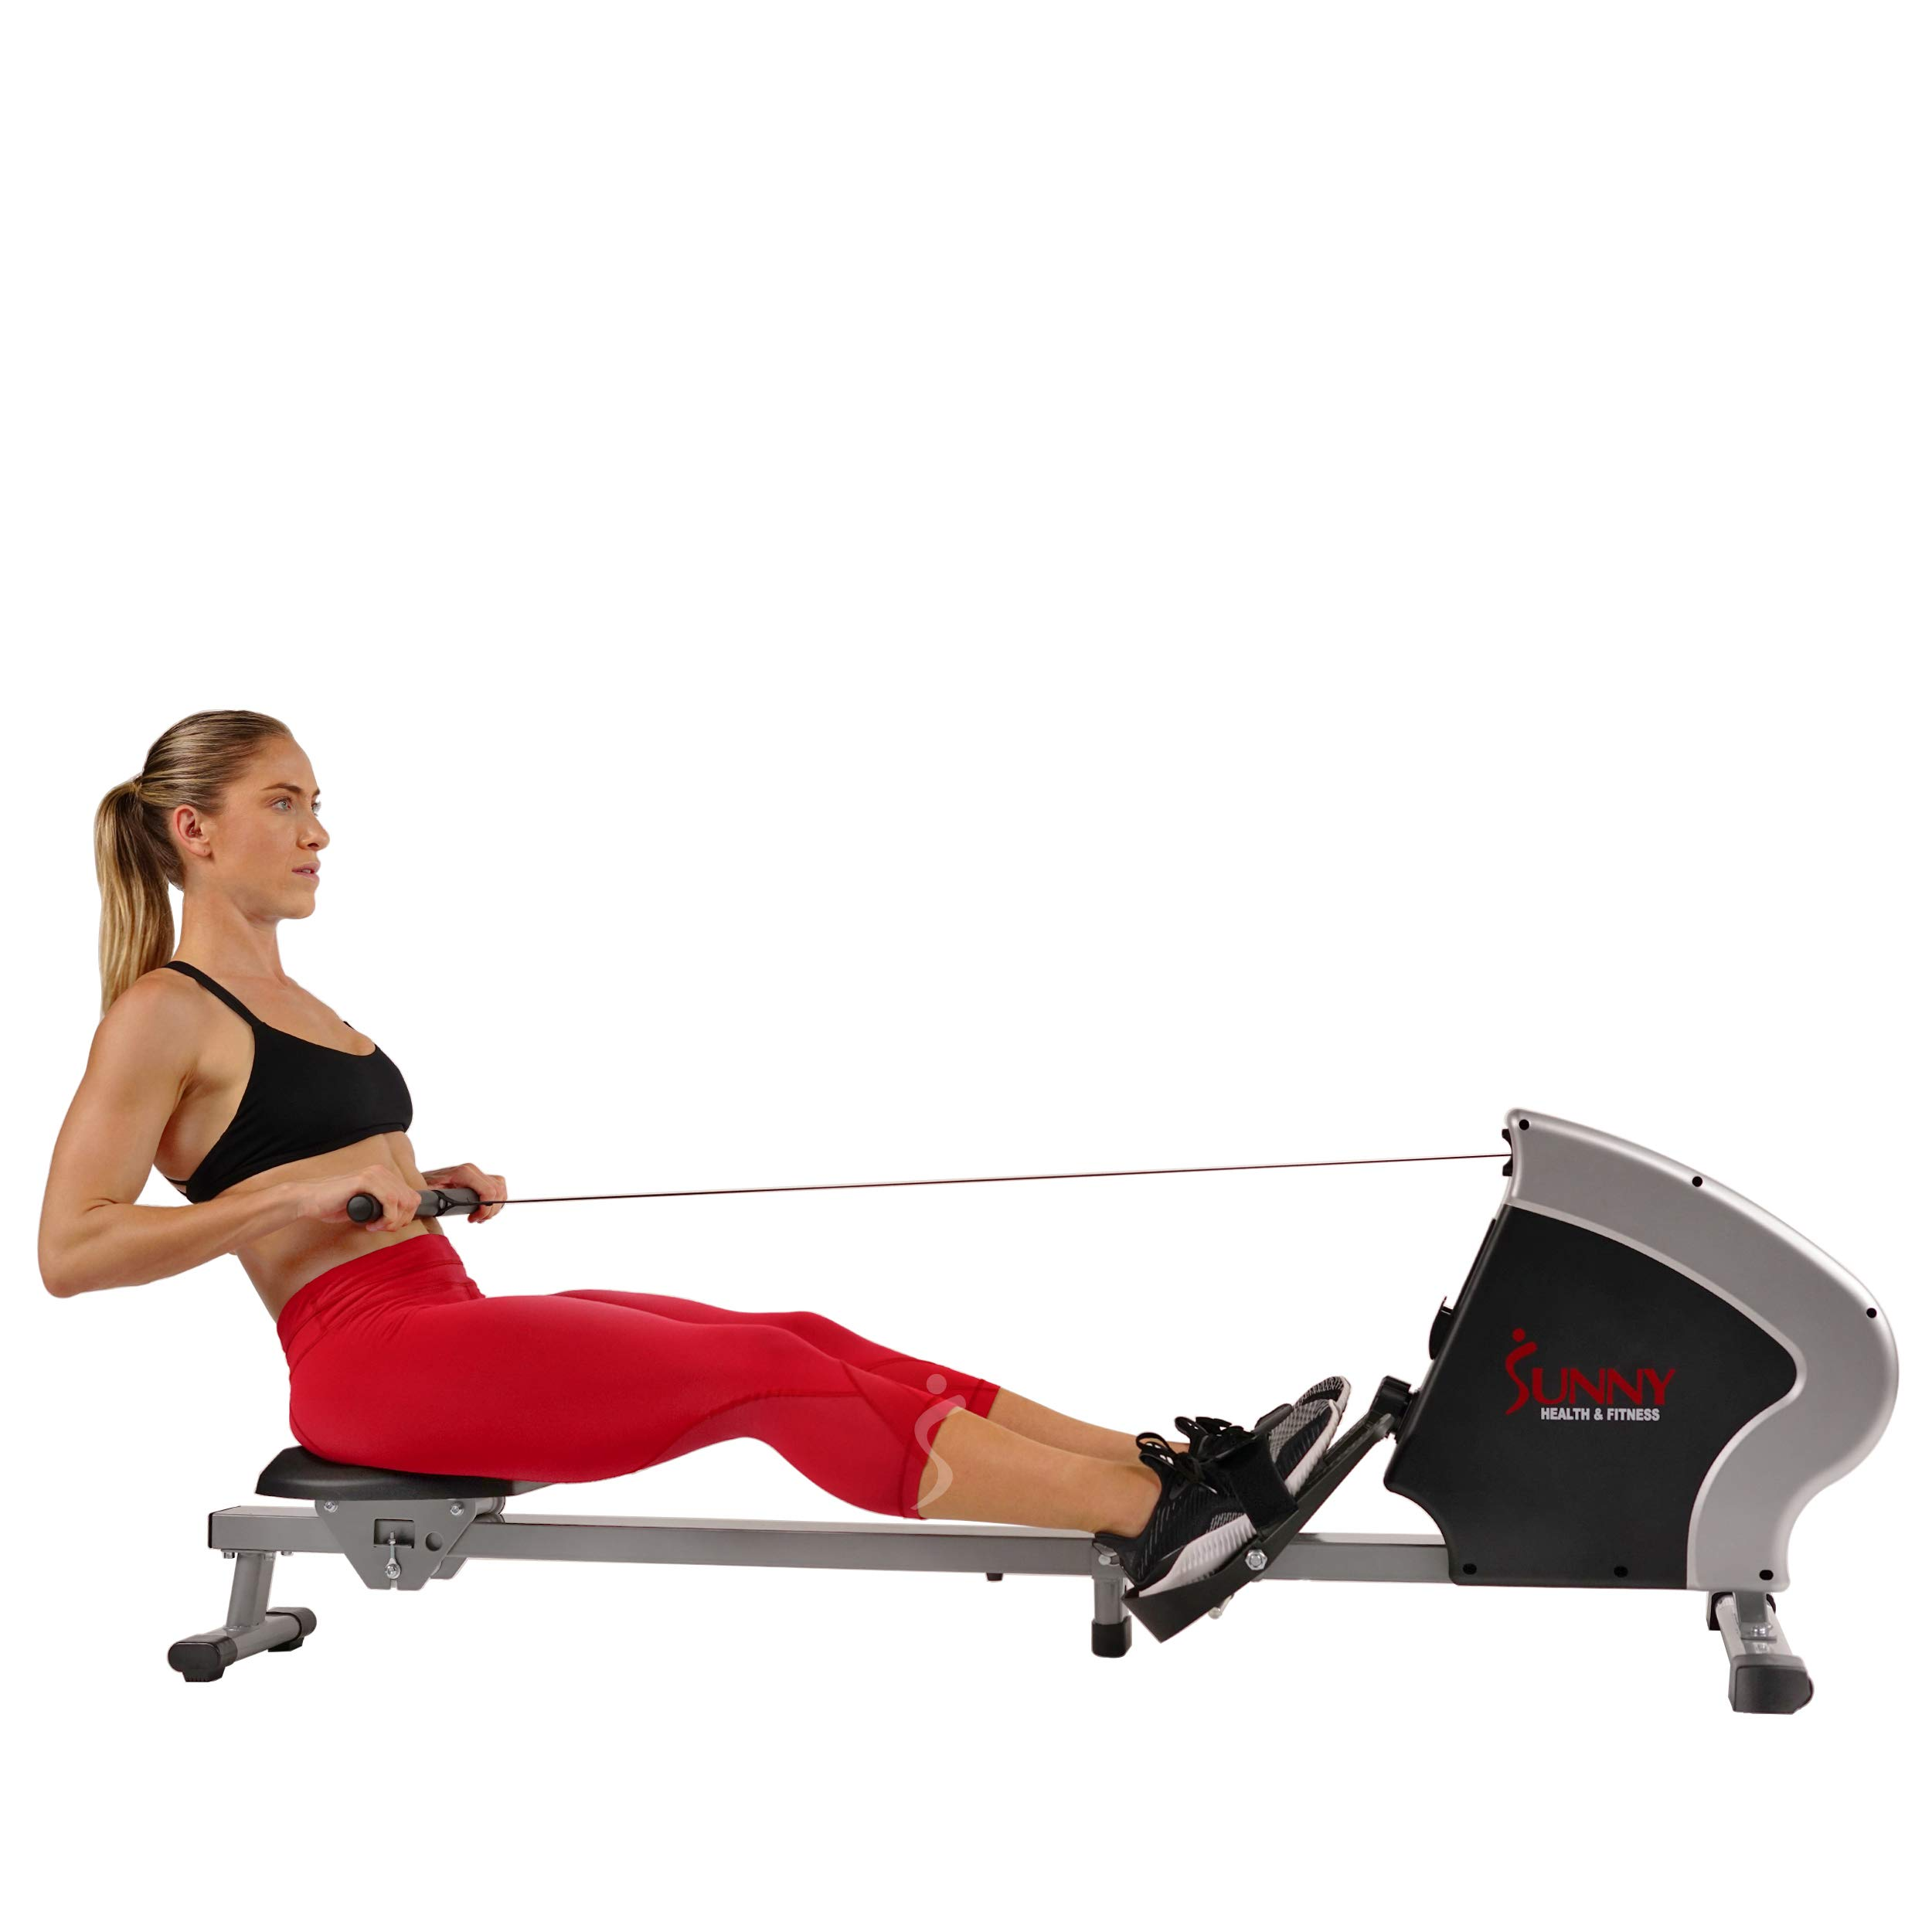 Sunny Health & Fitness Compact Folding Magnetic Rowing Machine Rower, LCD Monitor with Tablet Holder - Synergy Power Motion - SF-RW5801